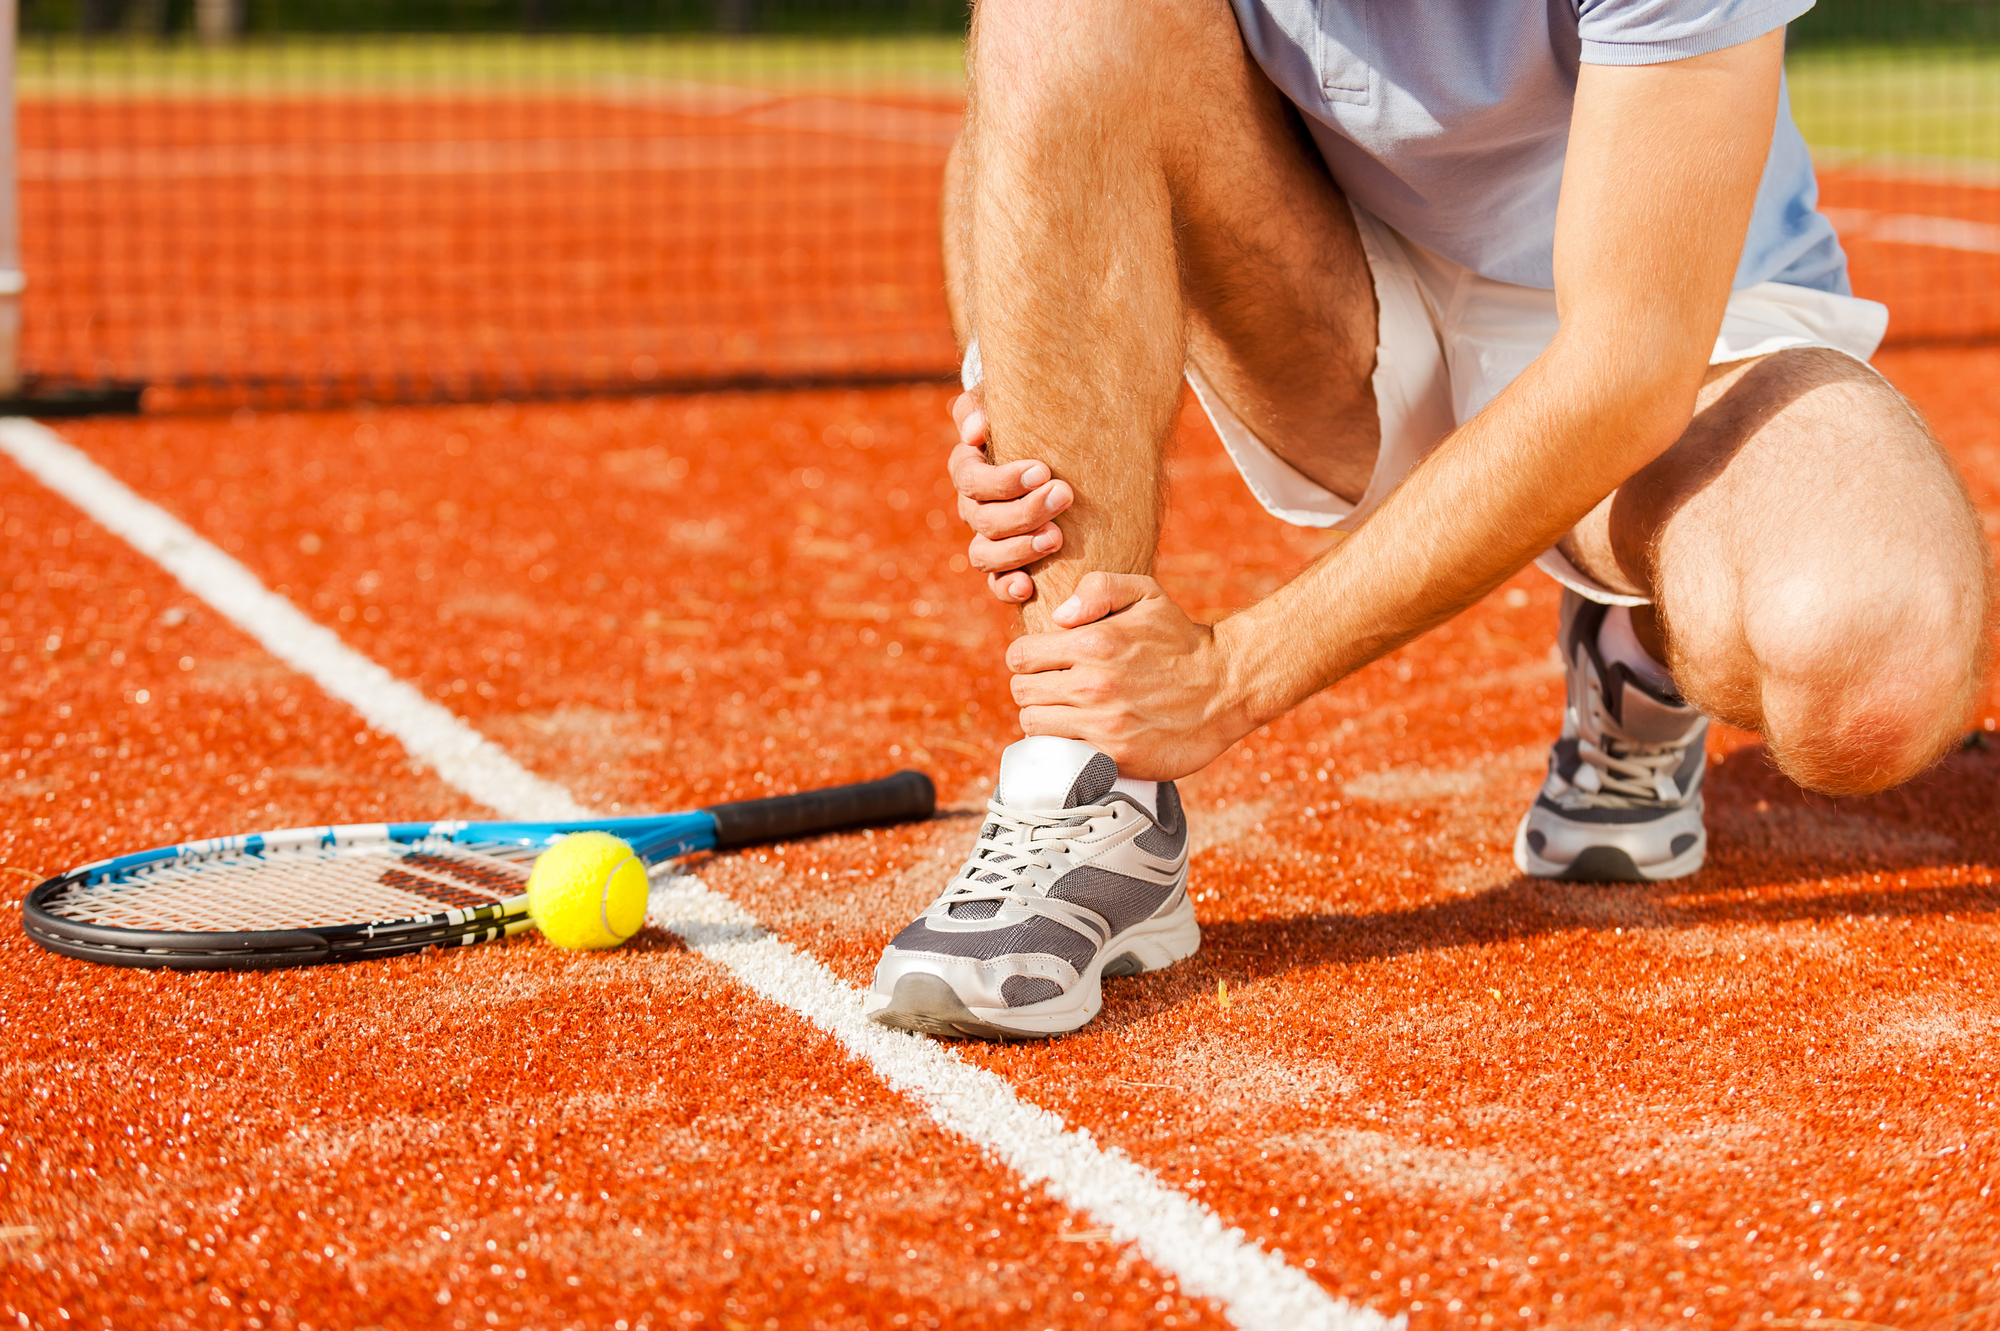 Sports injury. Close-up of tennis player touching his leg while sitting on the tennis court